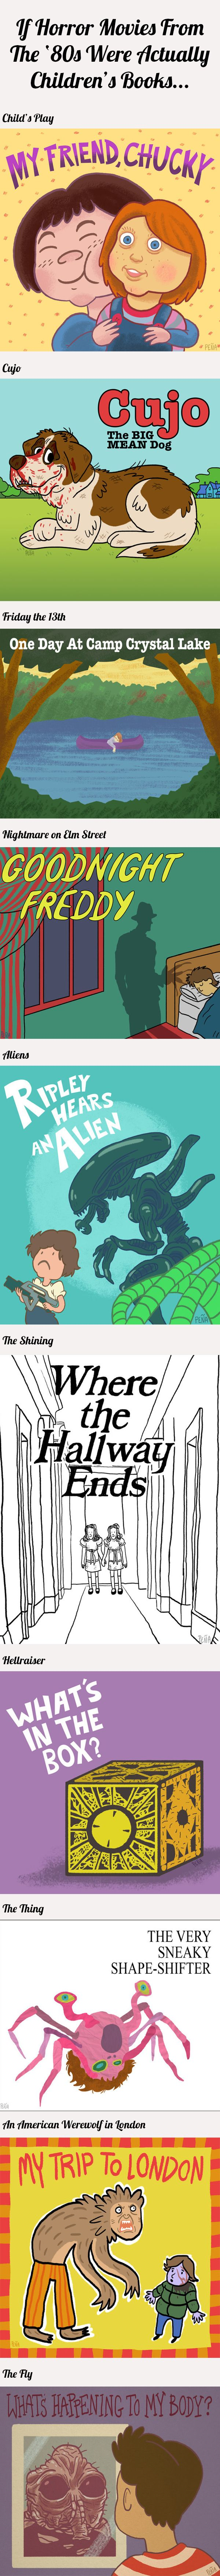 If horror movies from the '80s were actually children's books… | B for Bel